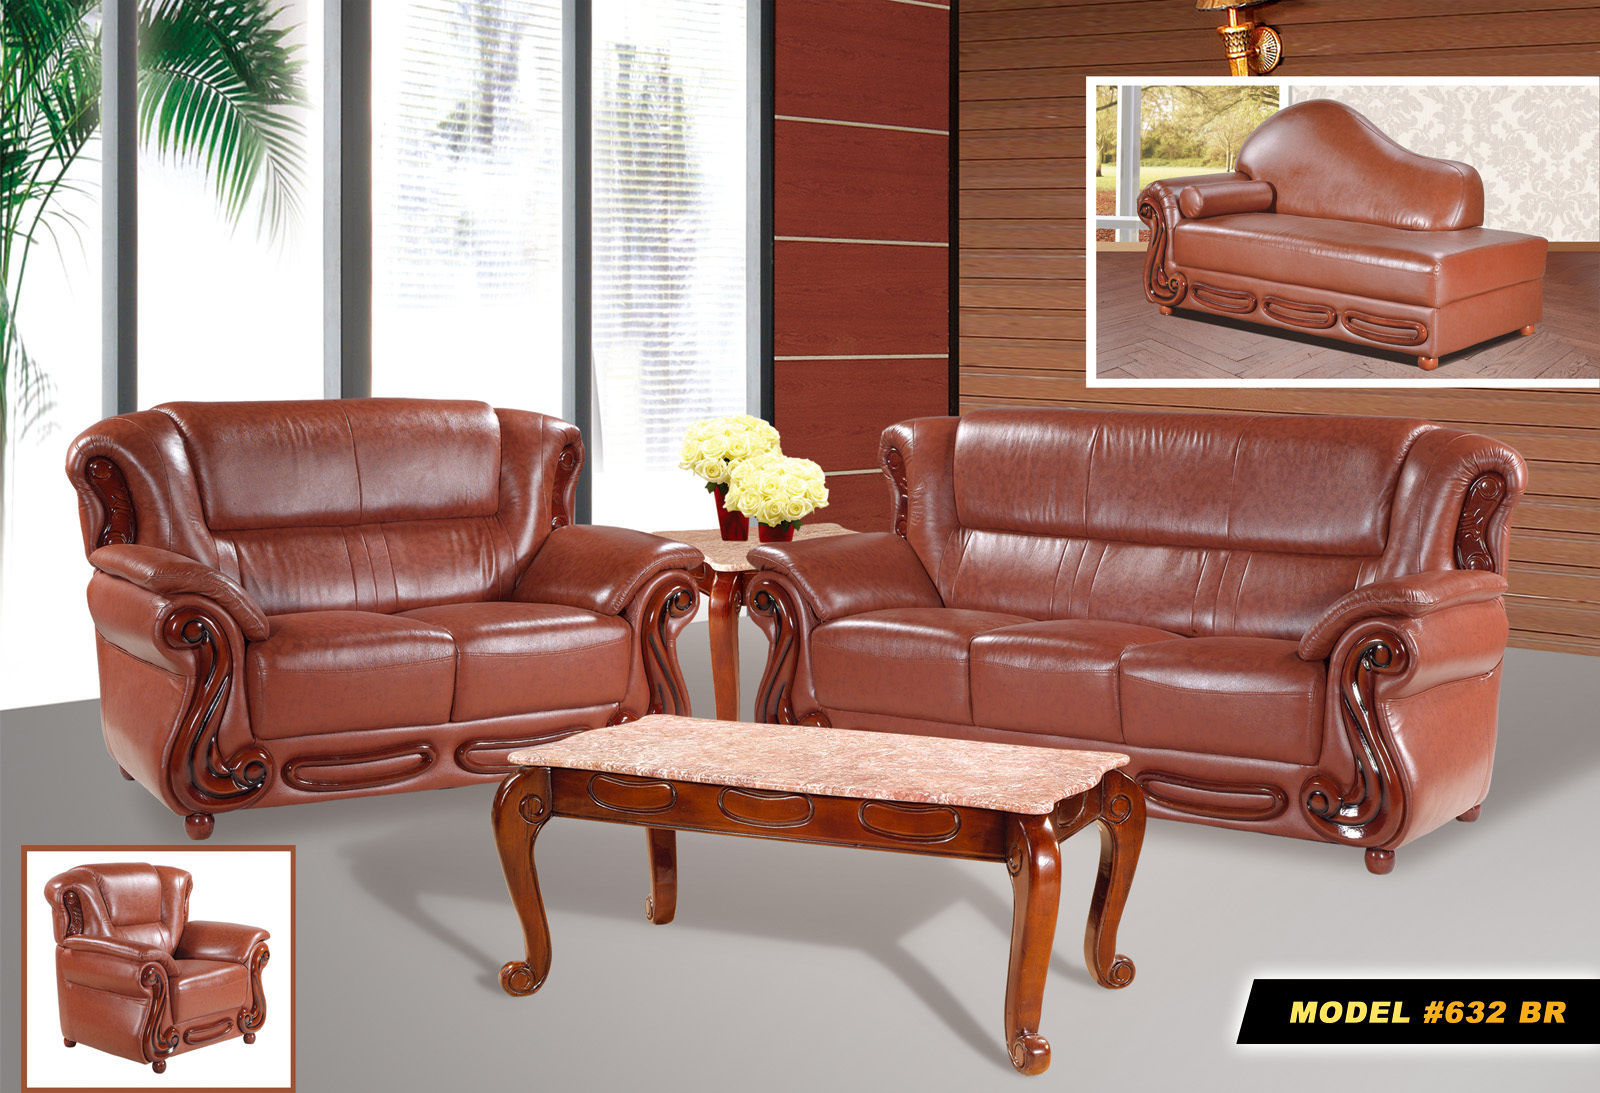 Meridian 632 Bella Living Room Sofa in Brown Bonded Leather Traditional Style